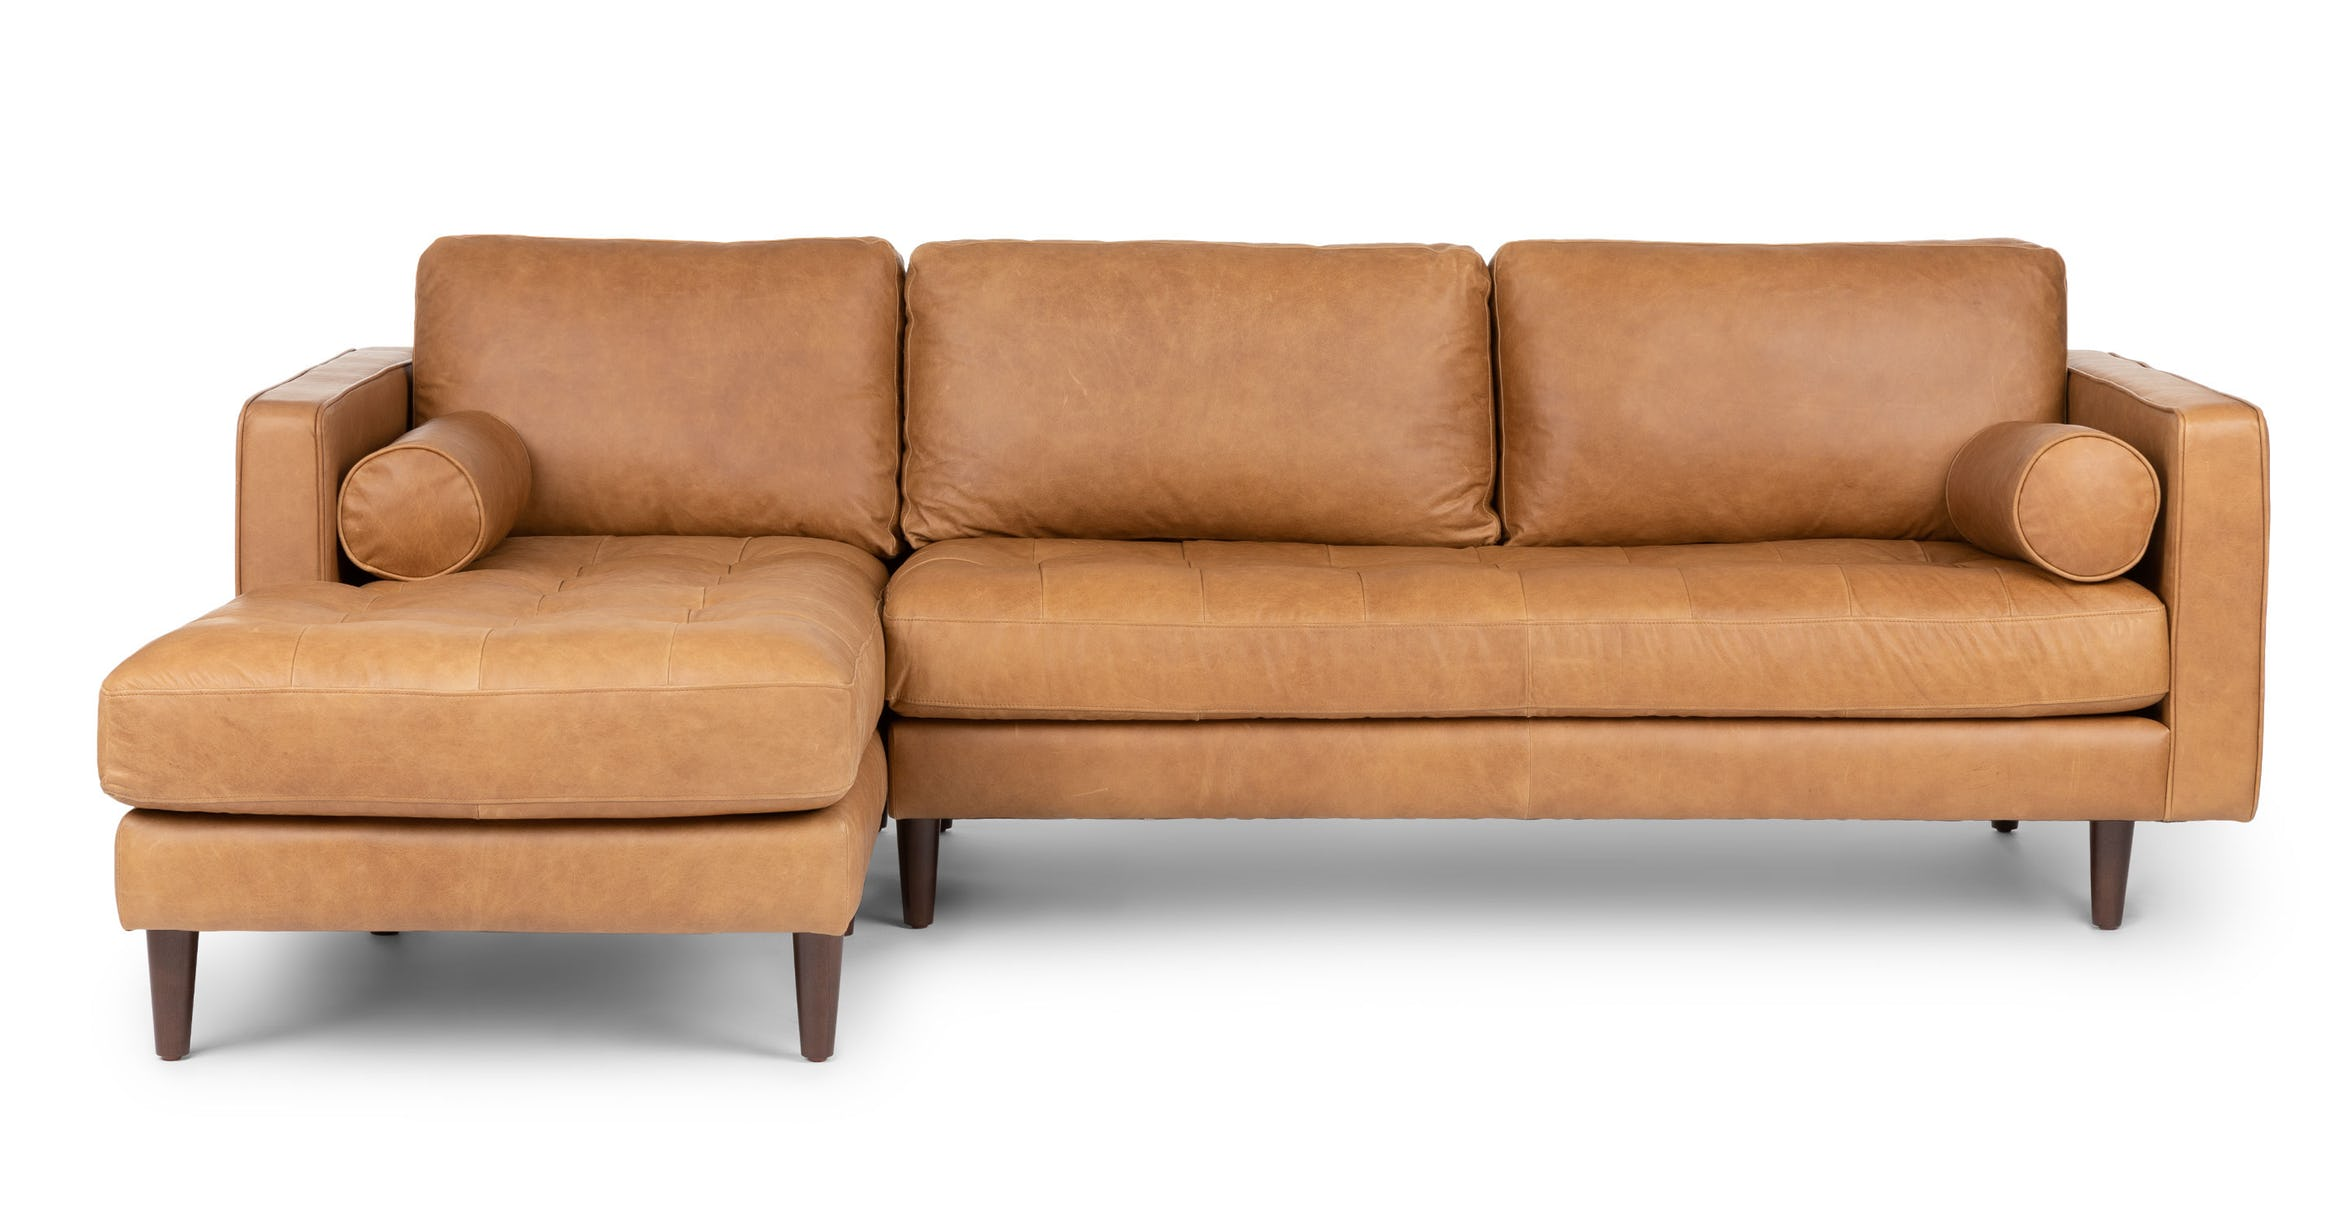 Standard configuration of a three seat sectional. A loveseat and a chaise.